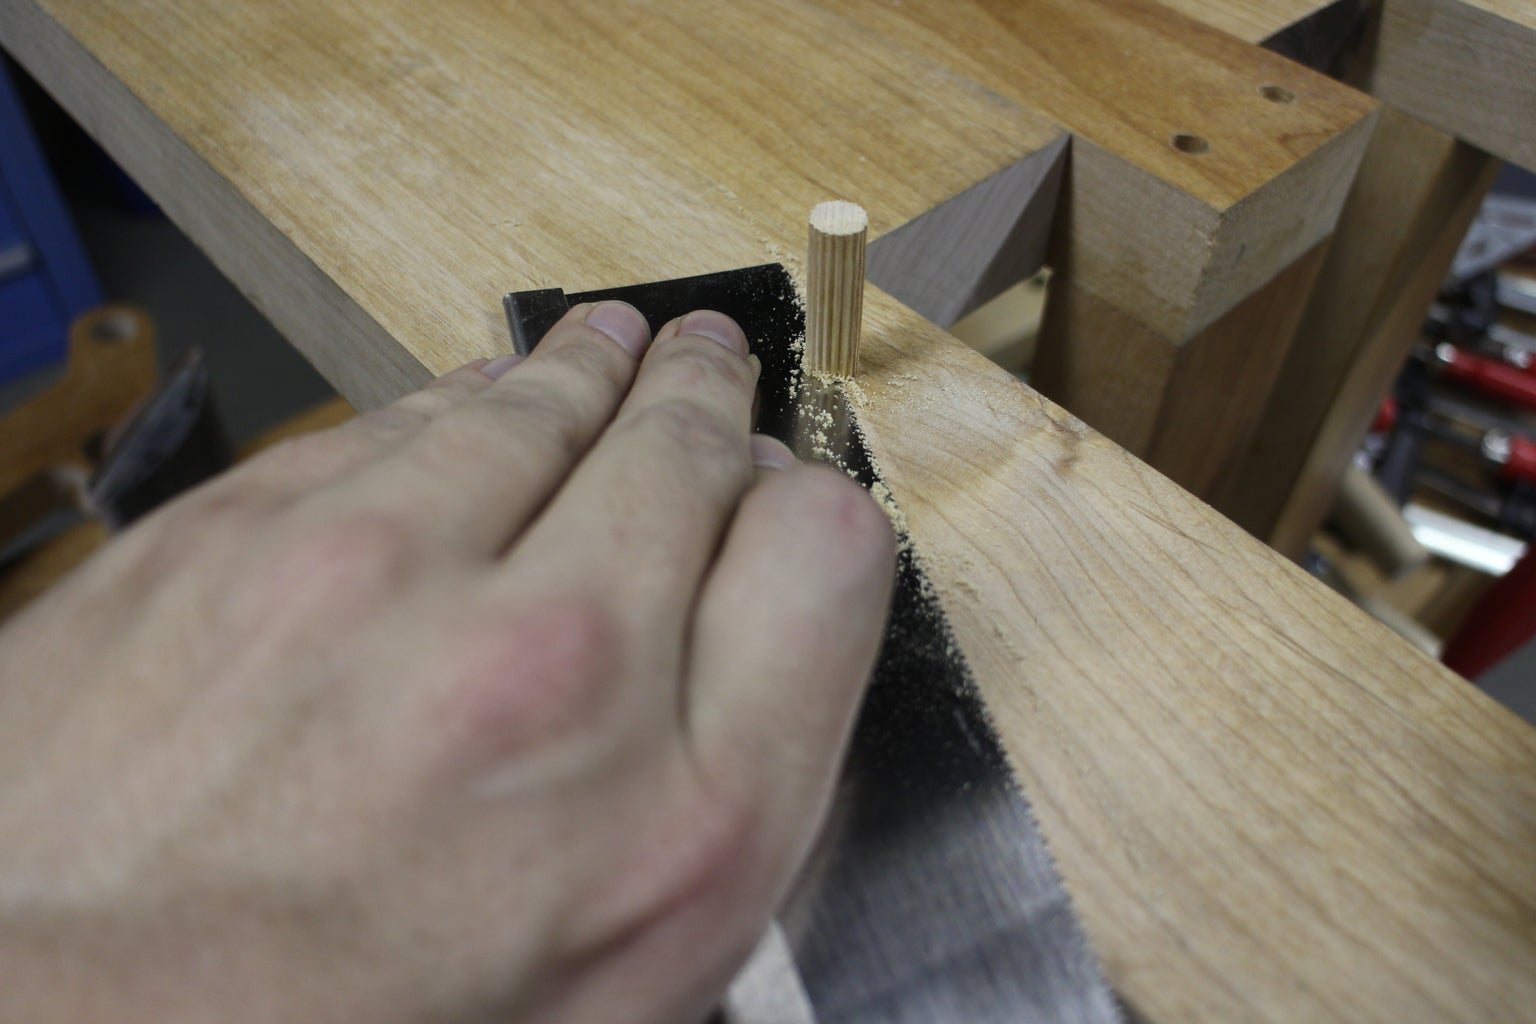 Screwing the Shelves Together [WIN]